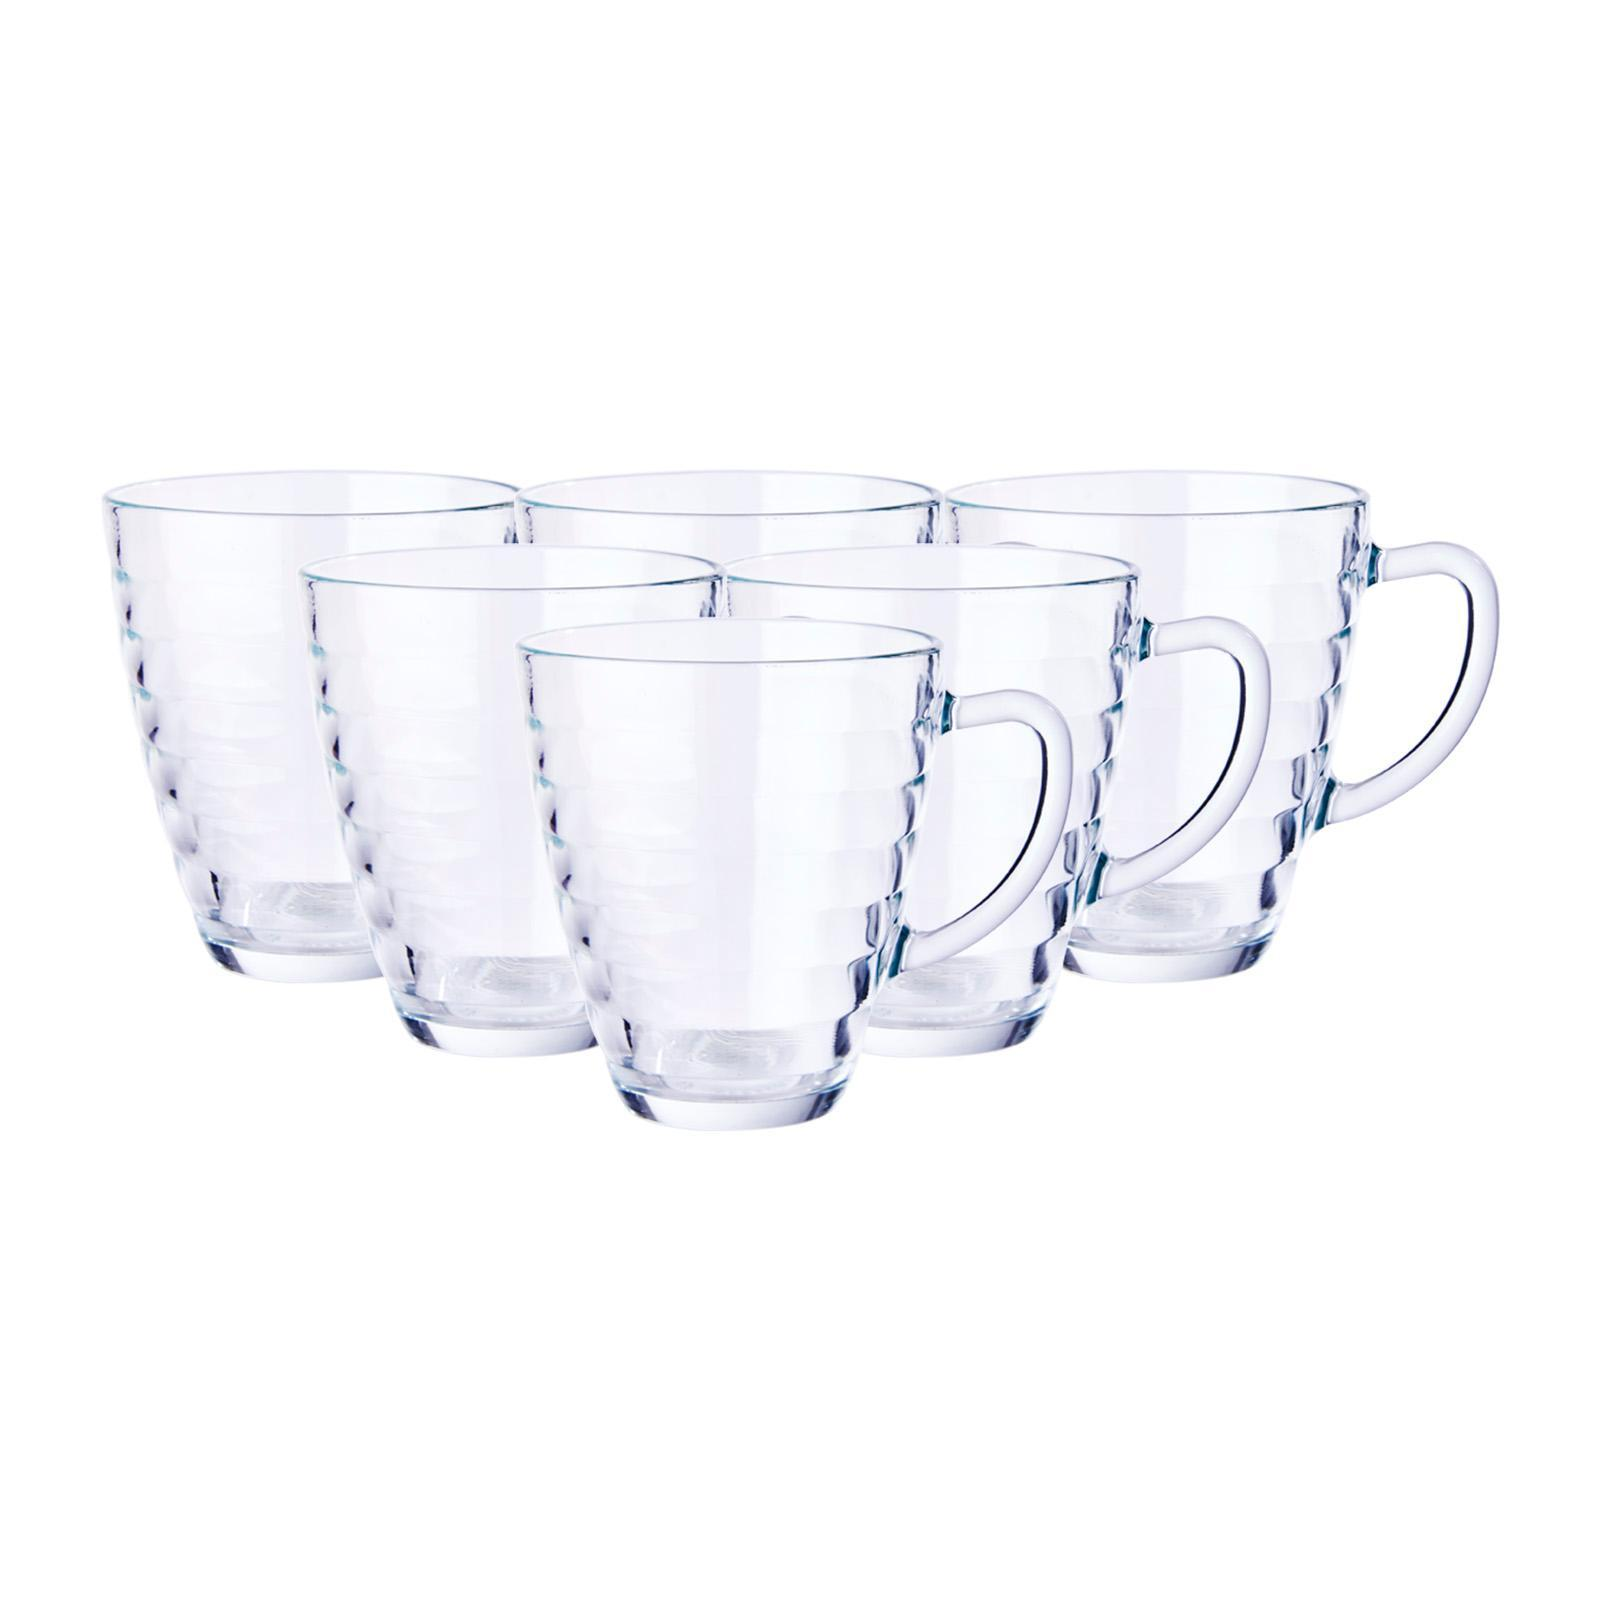 Bormioli Rocco Viva Mug 310 ML (6 Pieces) - Case